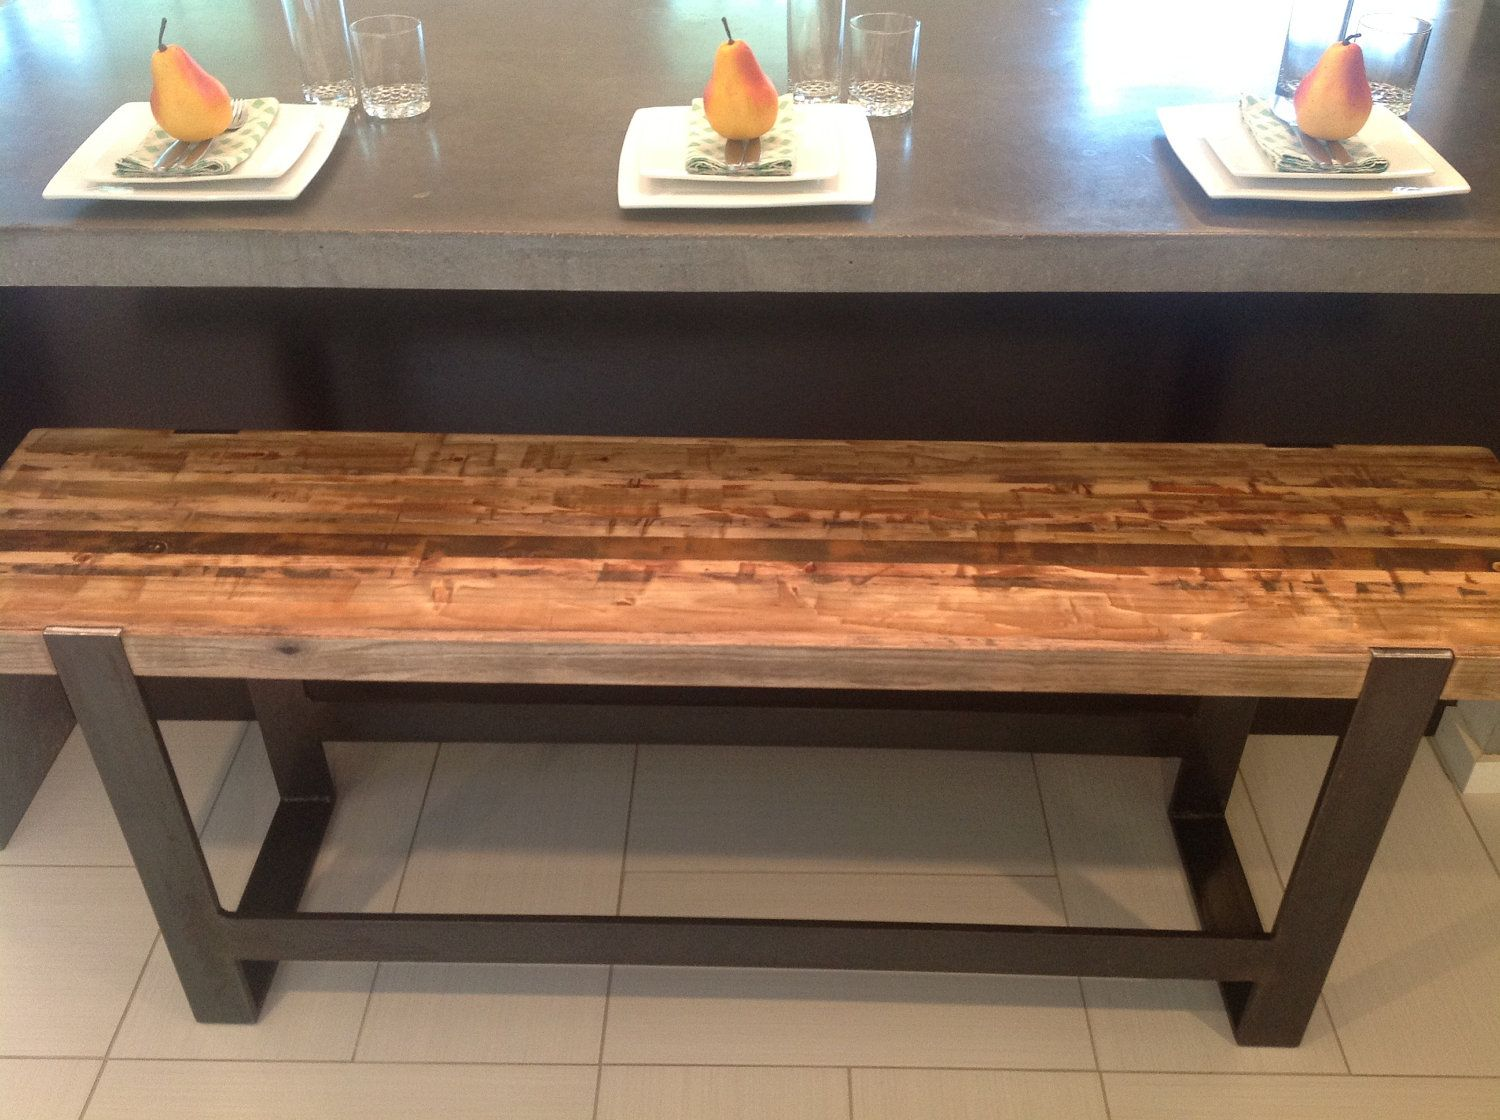 Modern Industrial Bar Bench Counter Bench Bar Bench Reclaimed Wood Bars Counter Height Bench